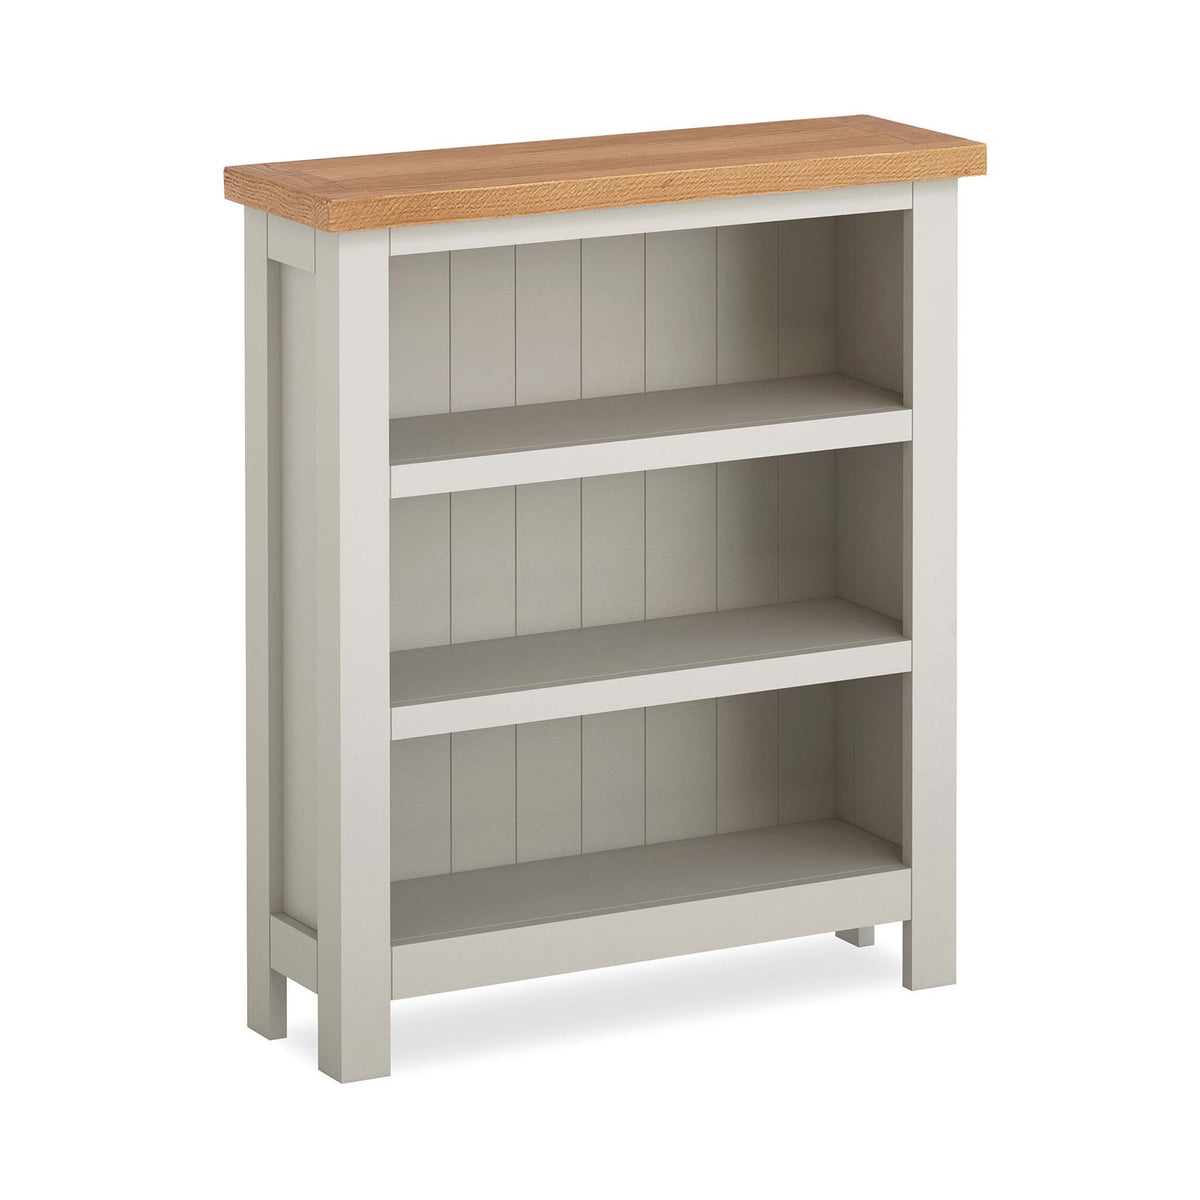 Dorset Stone Grey Low Bookcase by Roseland Furniture